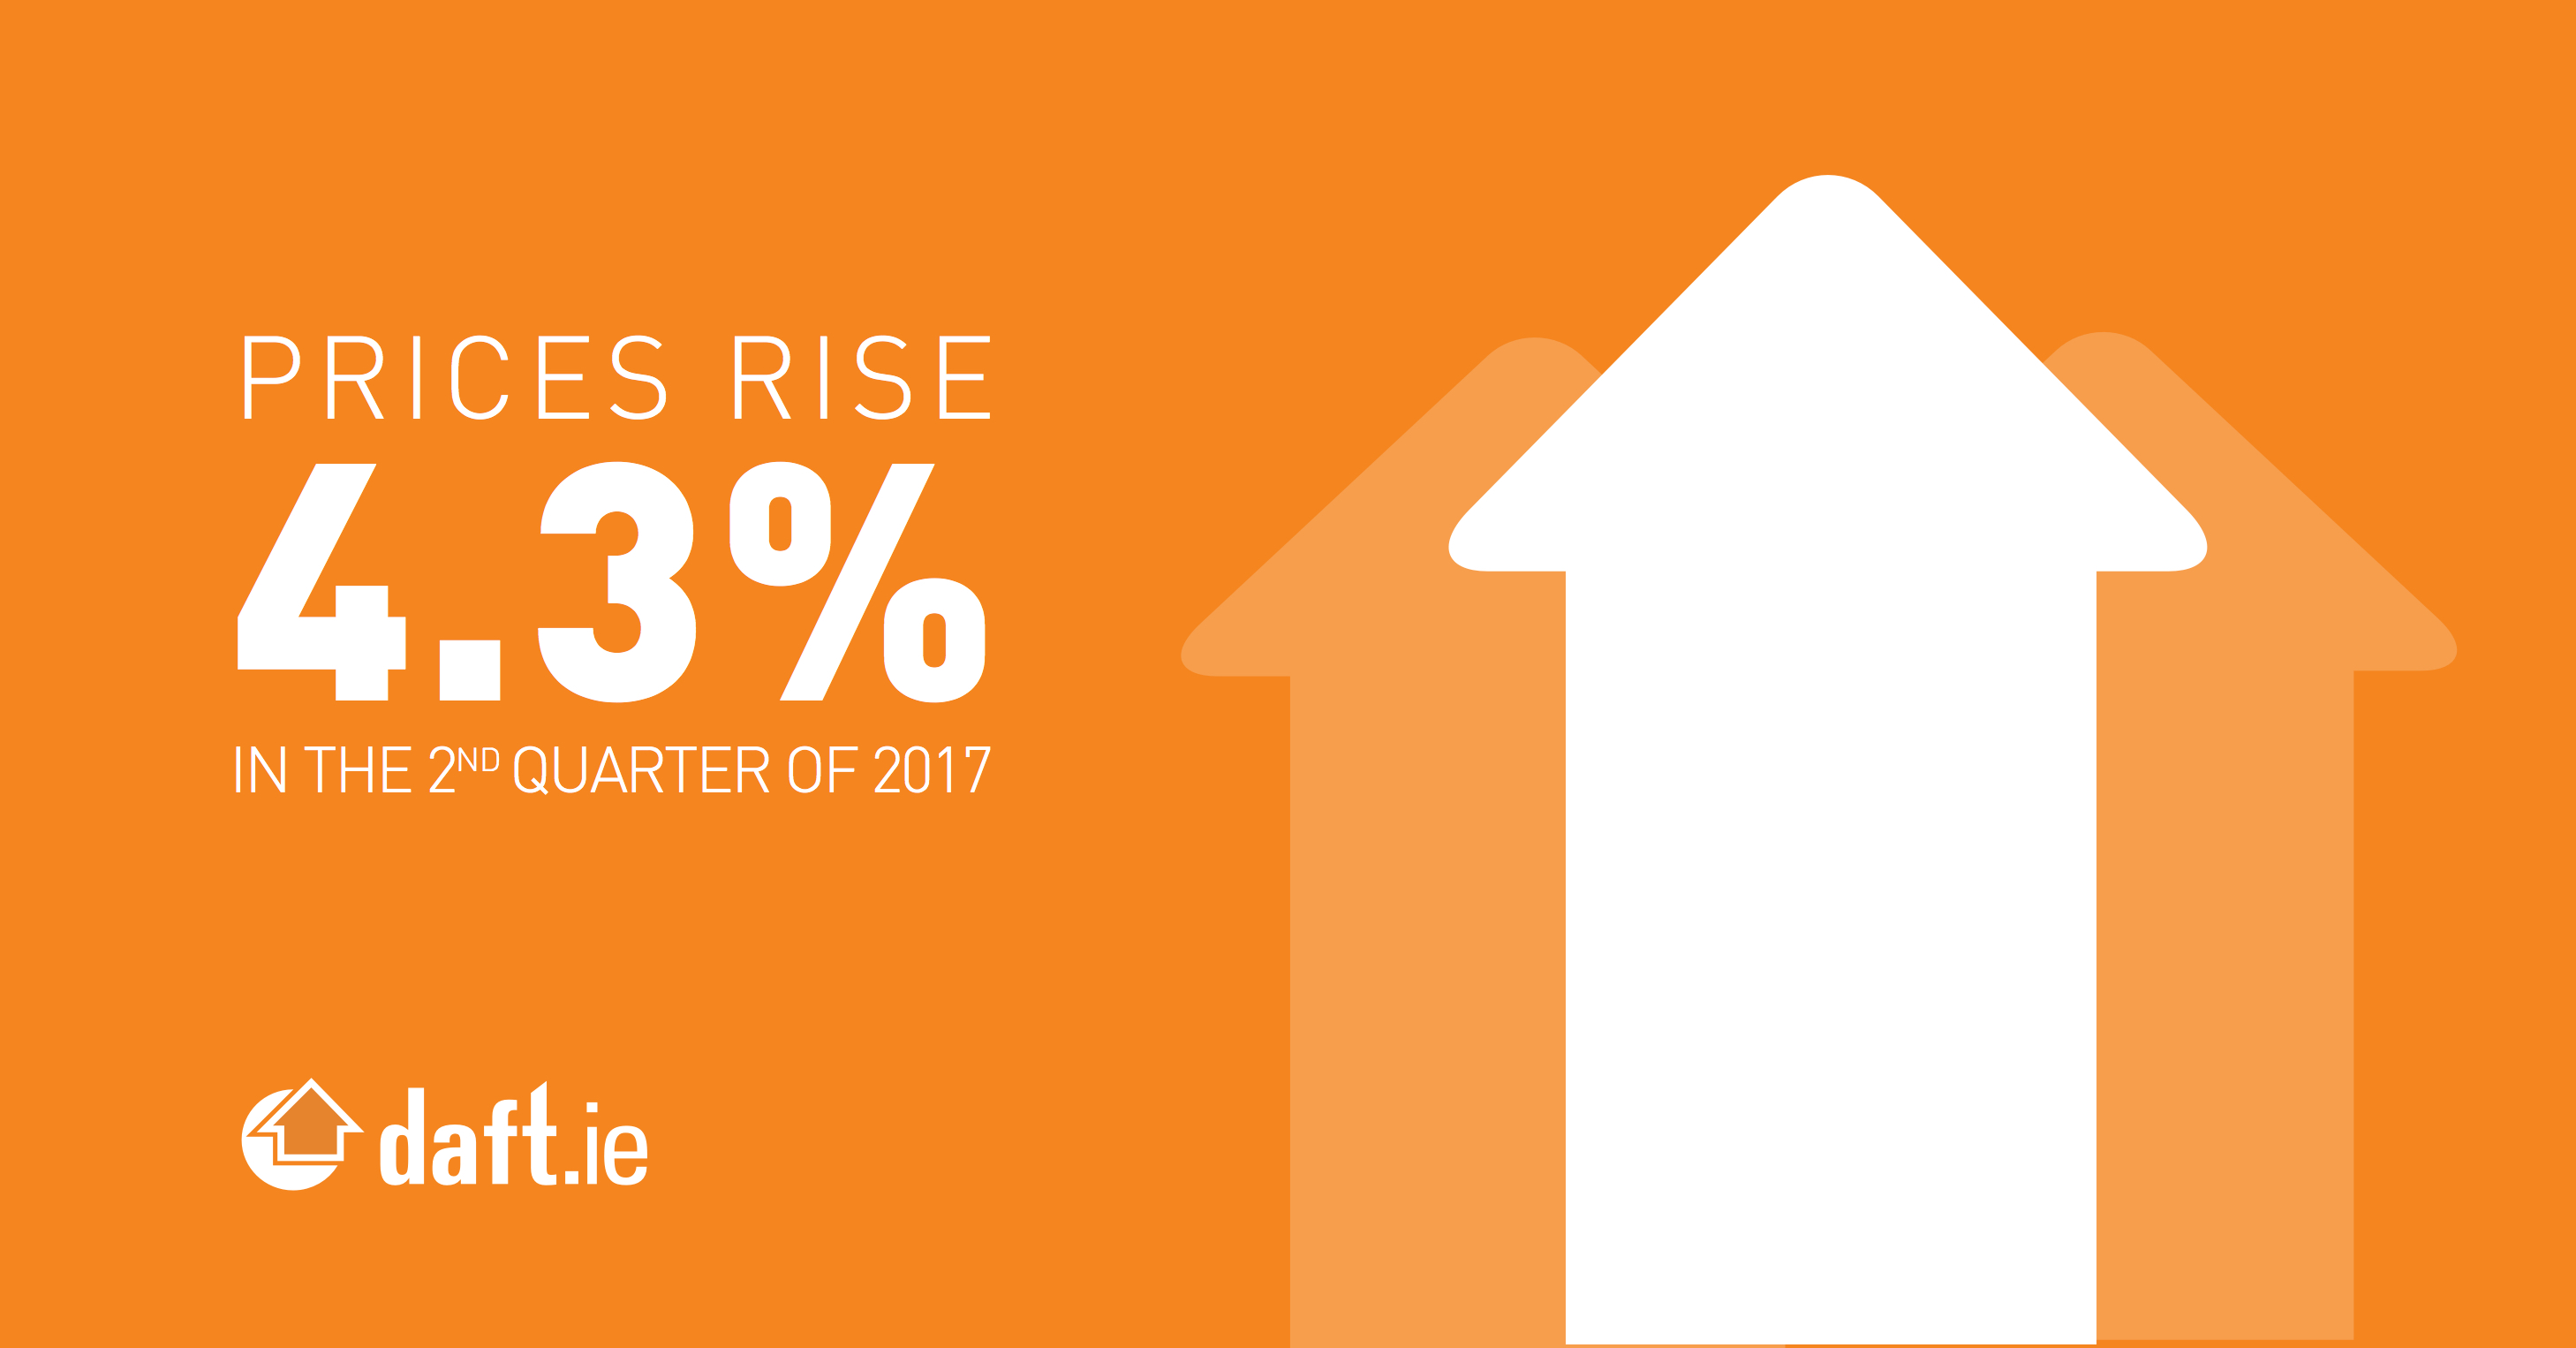 Prices rise 4.3% in the 2nd quater of 2017